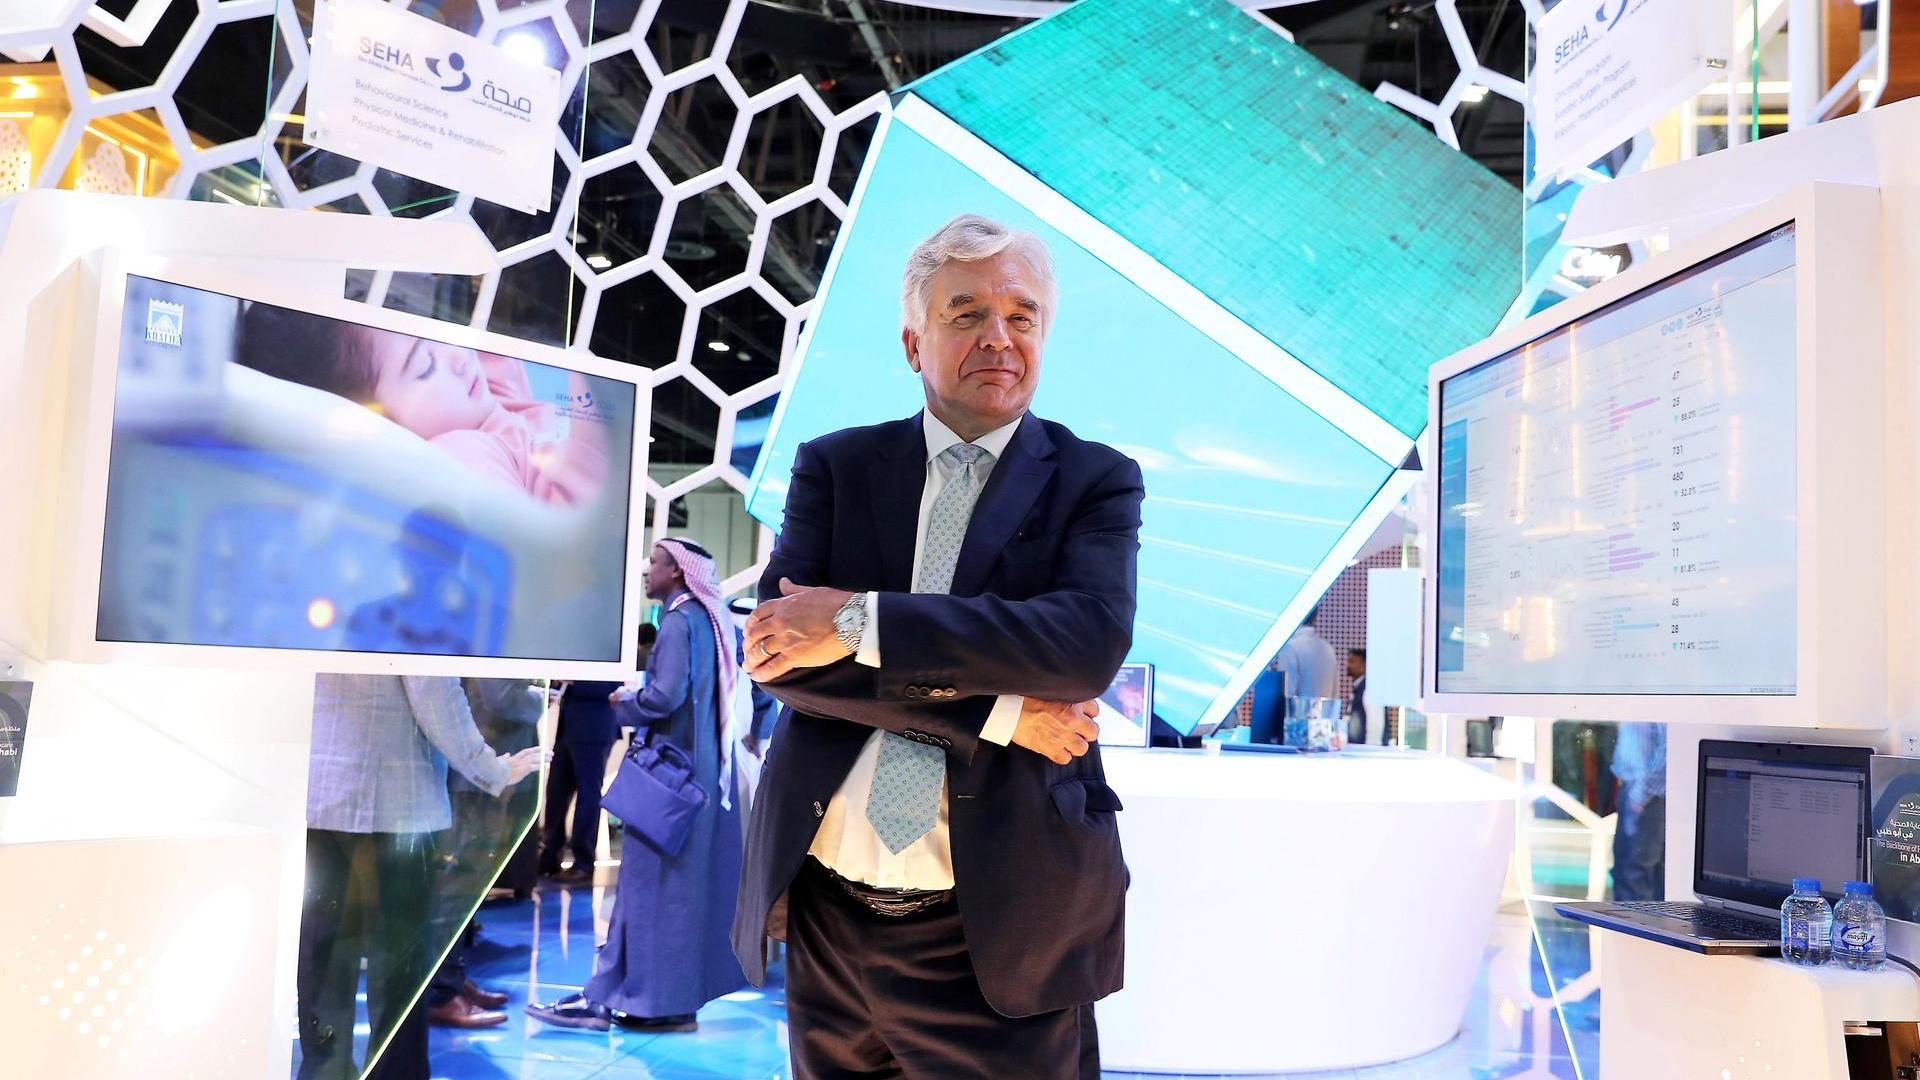 Dr Gareth Goodier, CEO of SEHA, at the Arab Health conference held at Dubai World Trade Centre in Dubai. Pawan Singh / The National